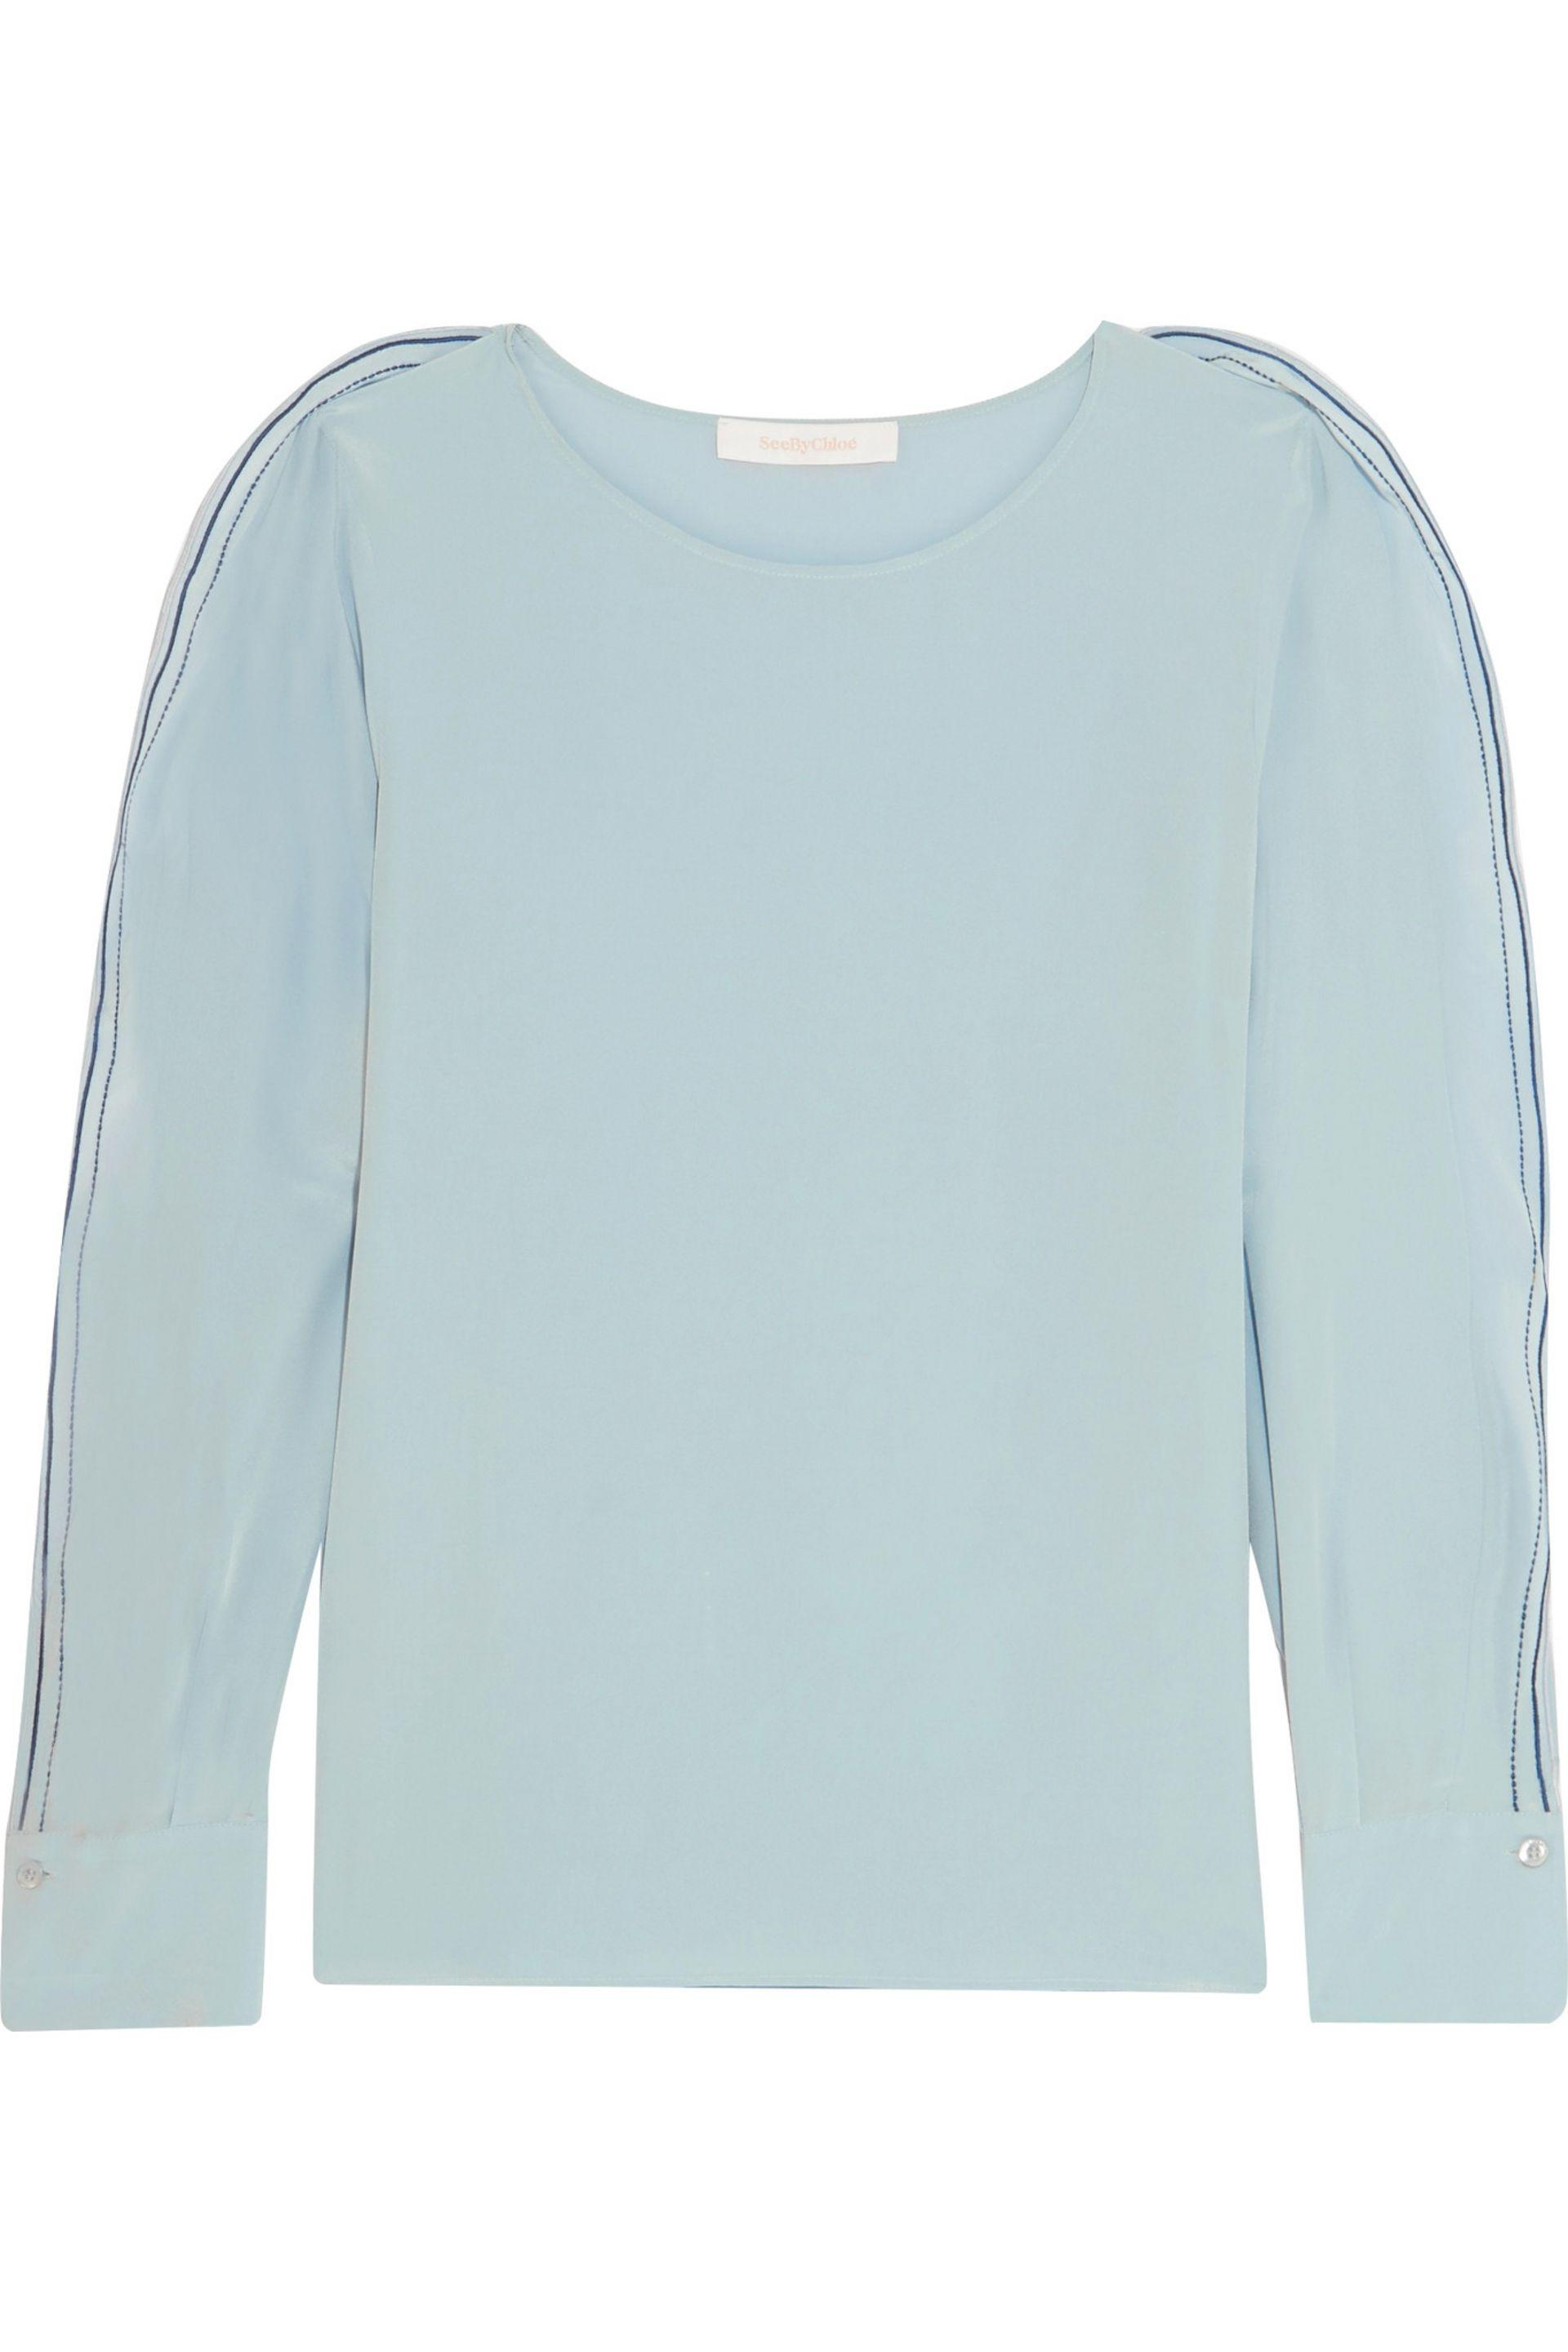 See By Chloé. Women's Blue Embroidered Ruffled Silk Crepe De Chine Top